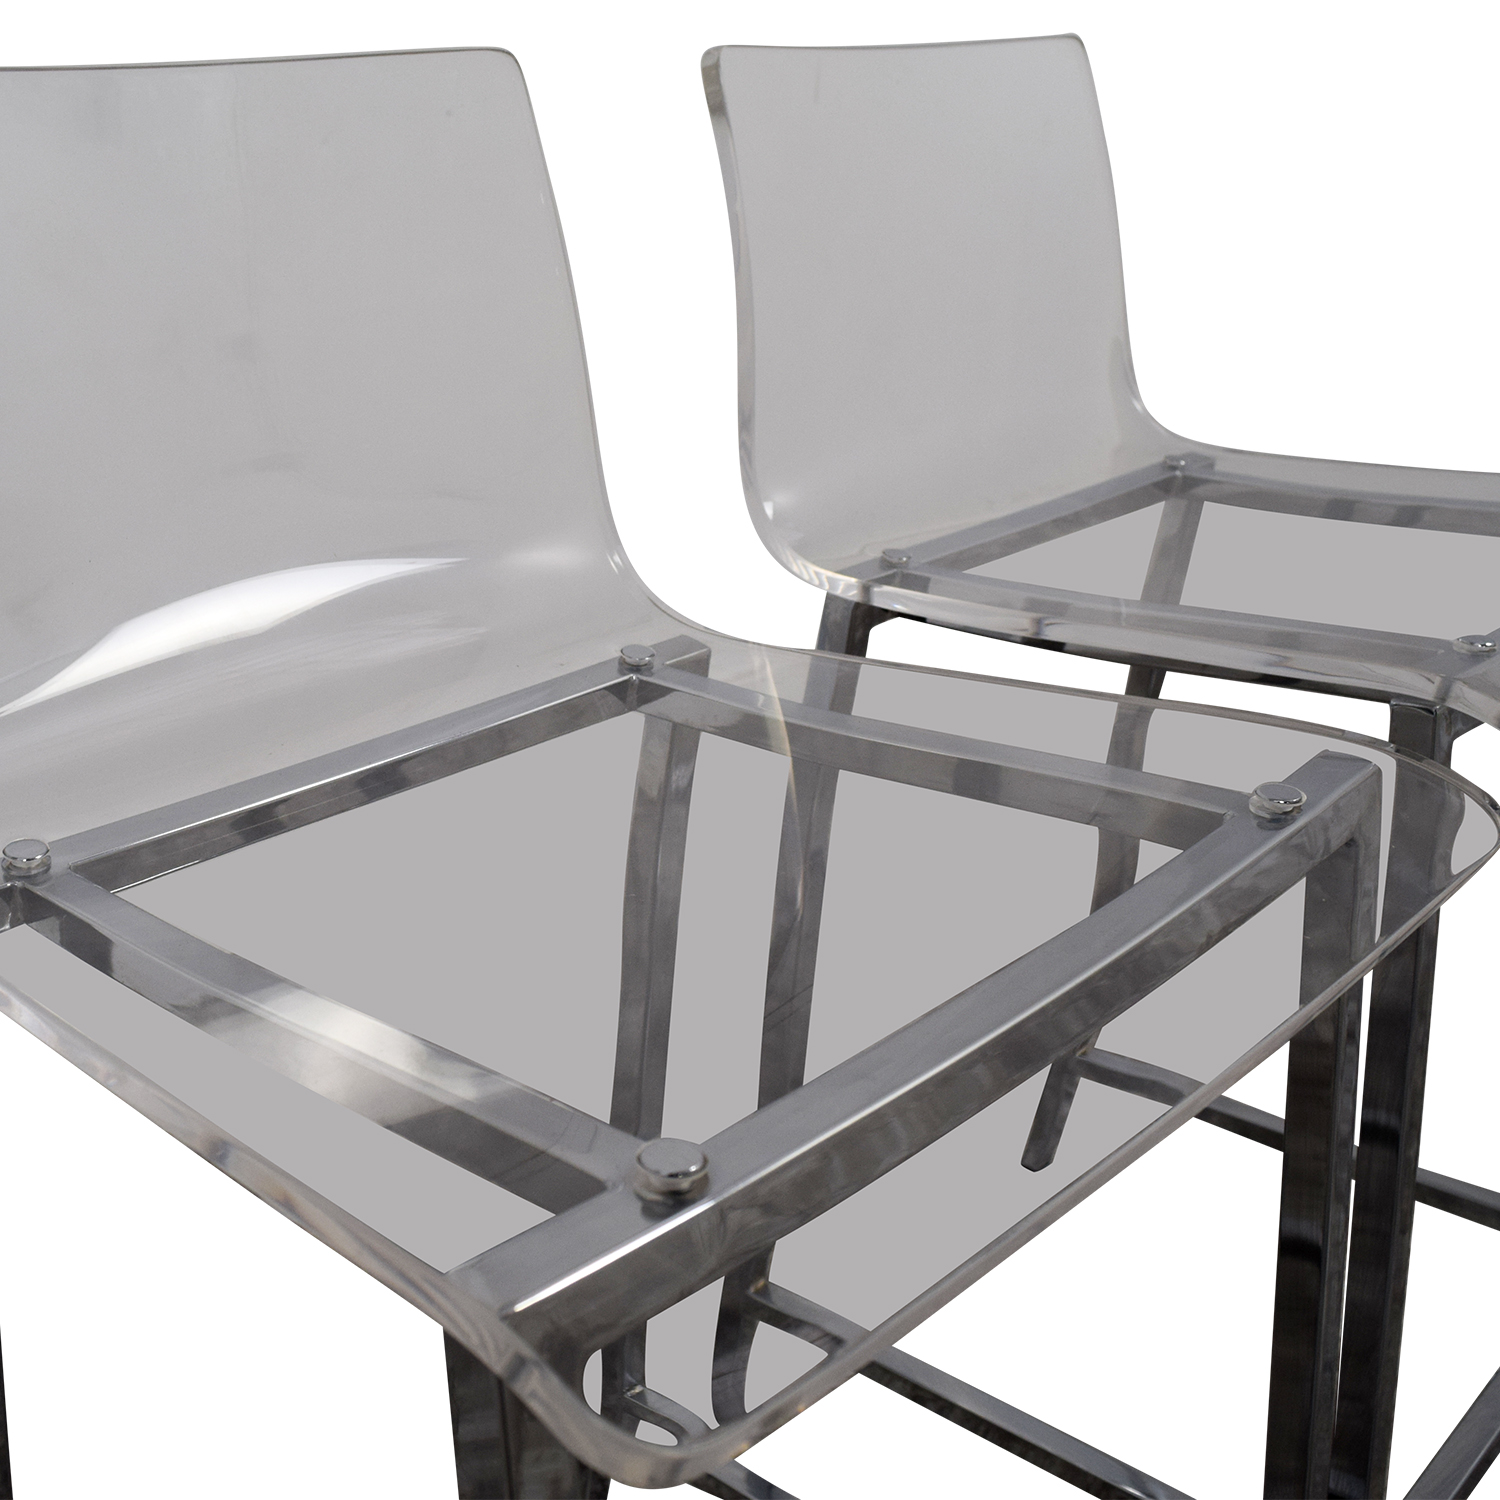 ... Stools Chairs; CB2 CB2 Clear Acrylic Bar Stools Dimensions ...